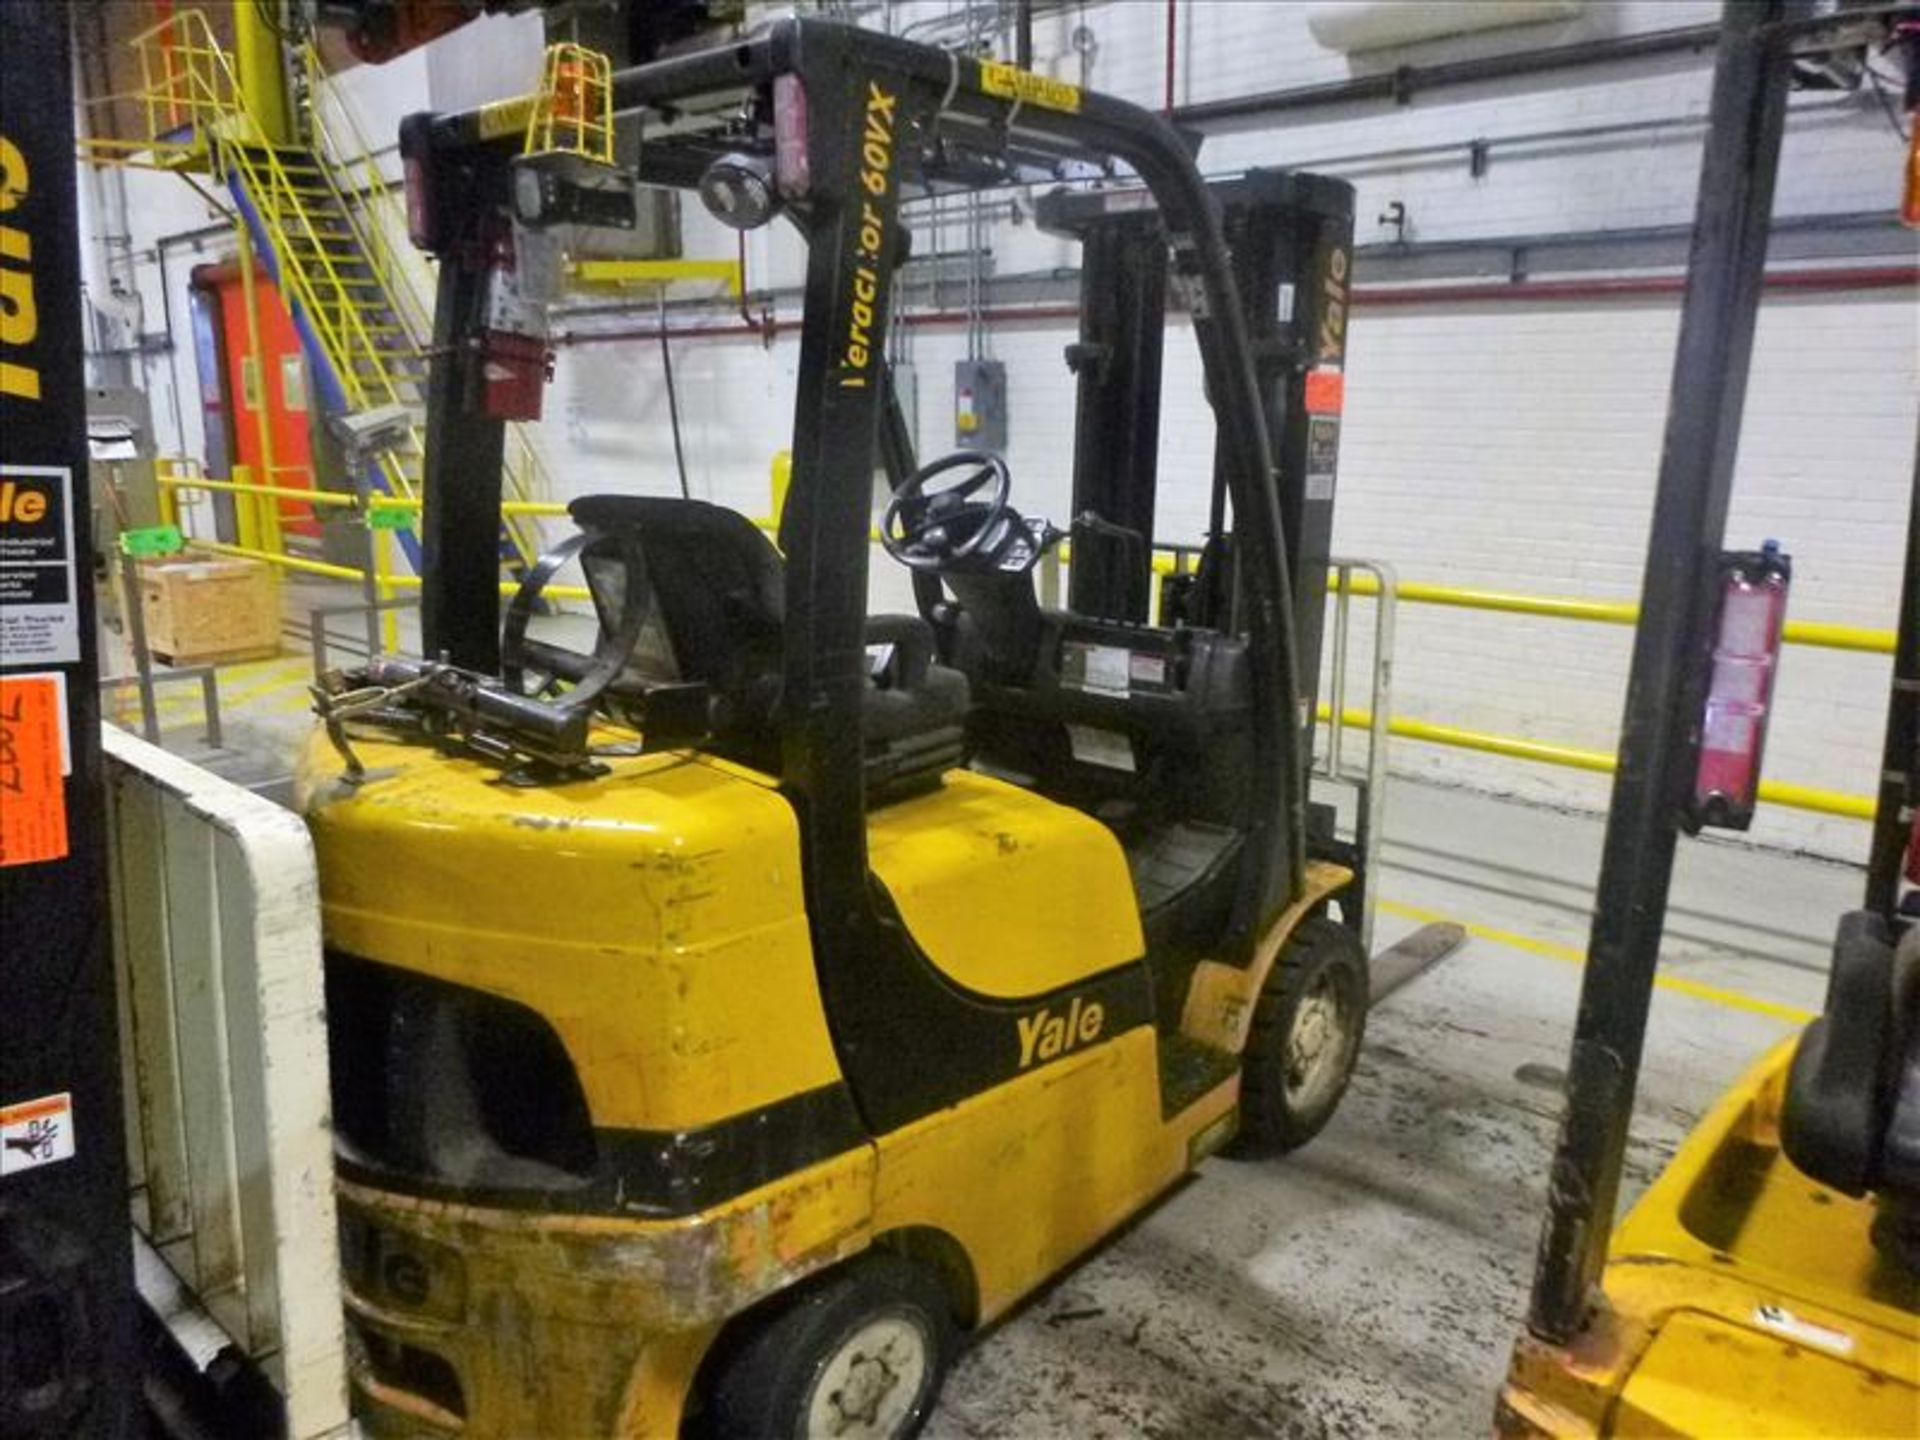 Yale fork lift truck, mod. GLC060VXNSEE085, ser. no. A910V23178L, LPG, 5500 lbs cap., 181 in. lift - Image 2 of 4